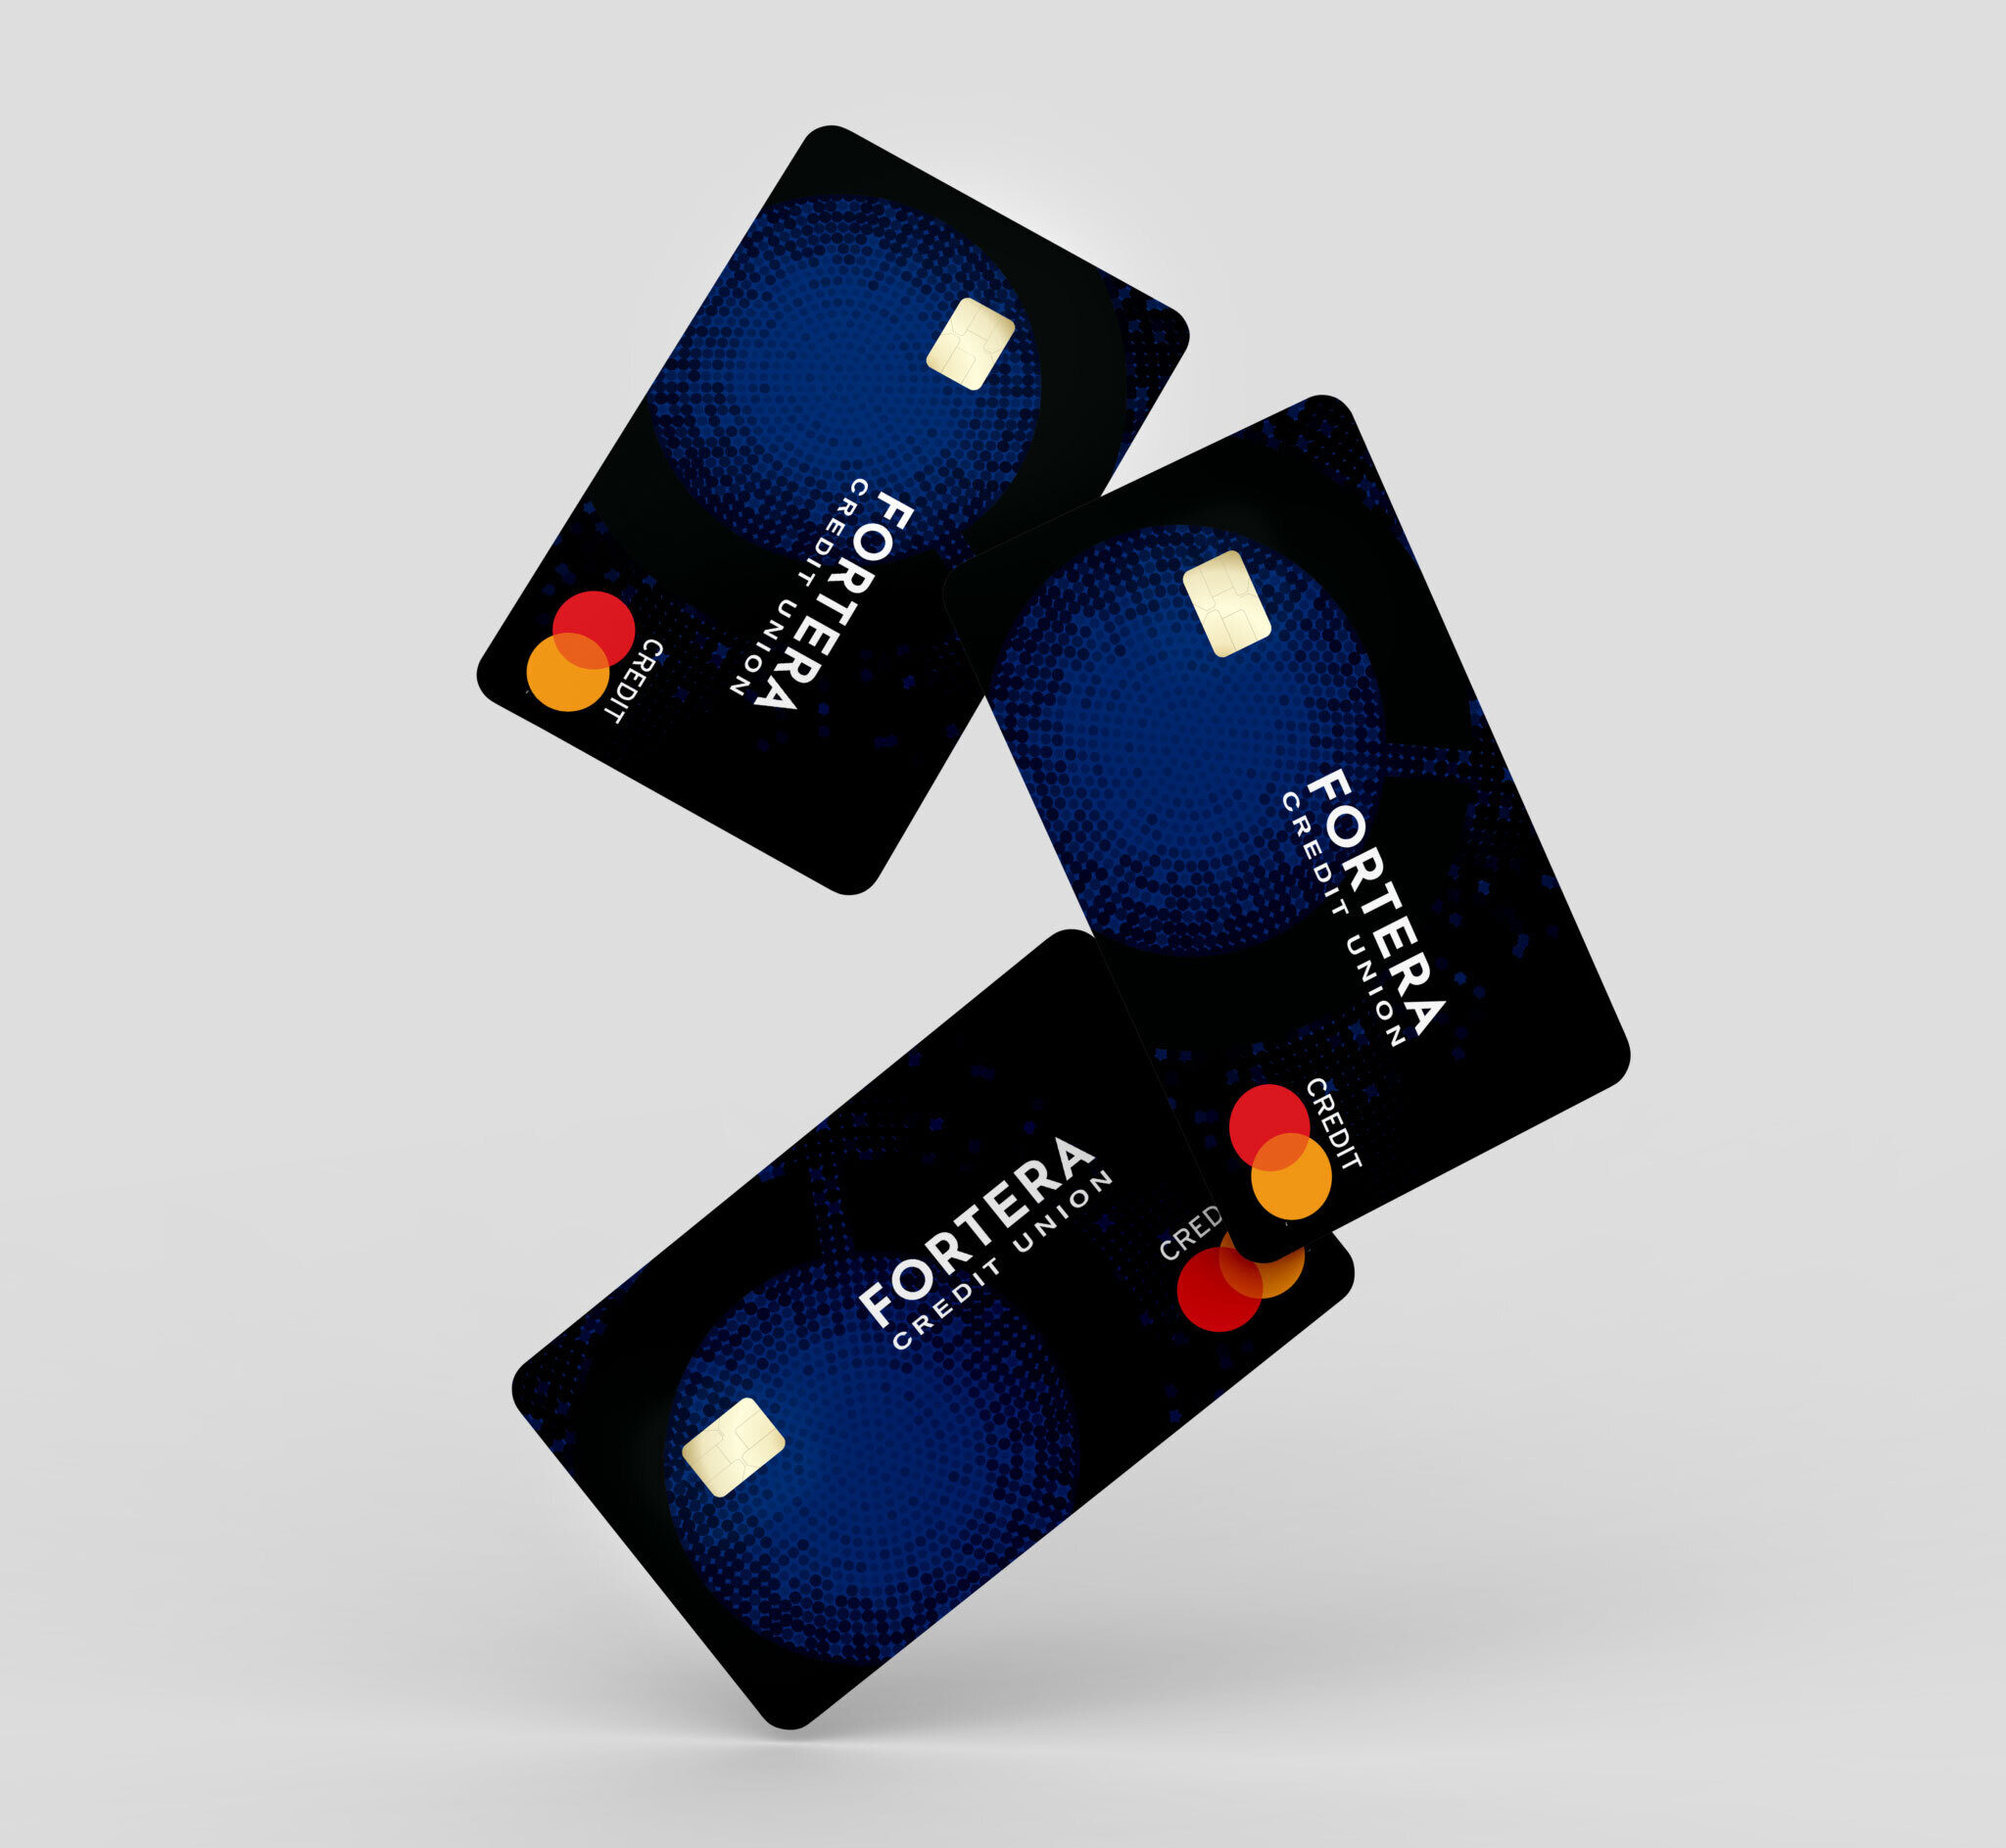 Power Credit Cards Floating